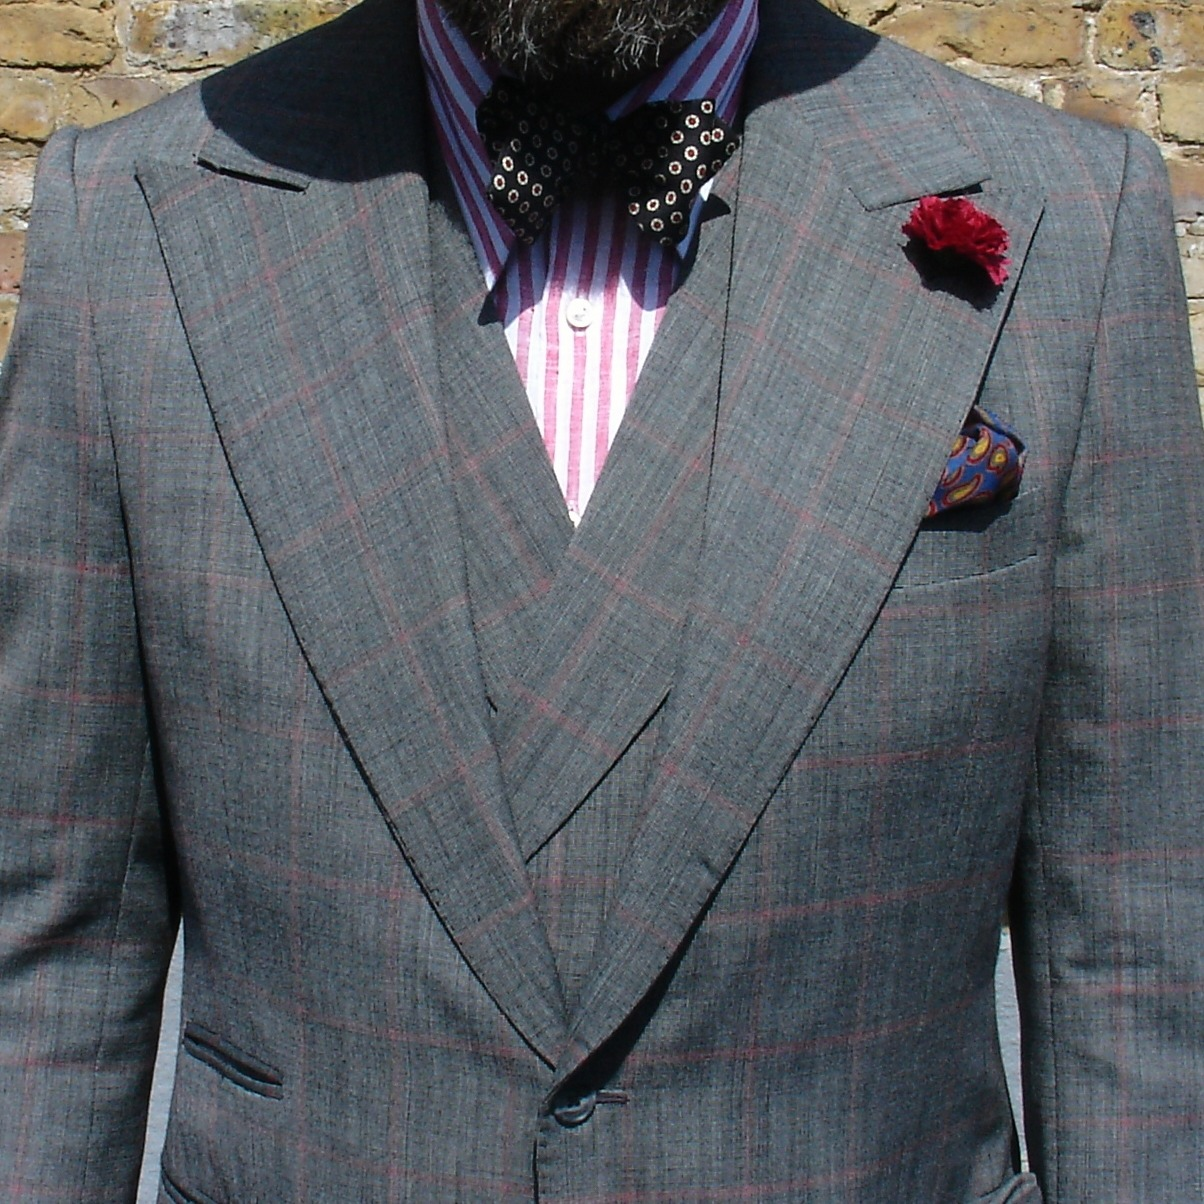 DandyChecks  Three parts of Four ( there's a single-breasted waistcoat as well! ) British Bespoke from Cad & the Dandy